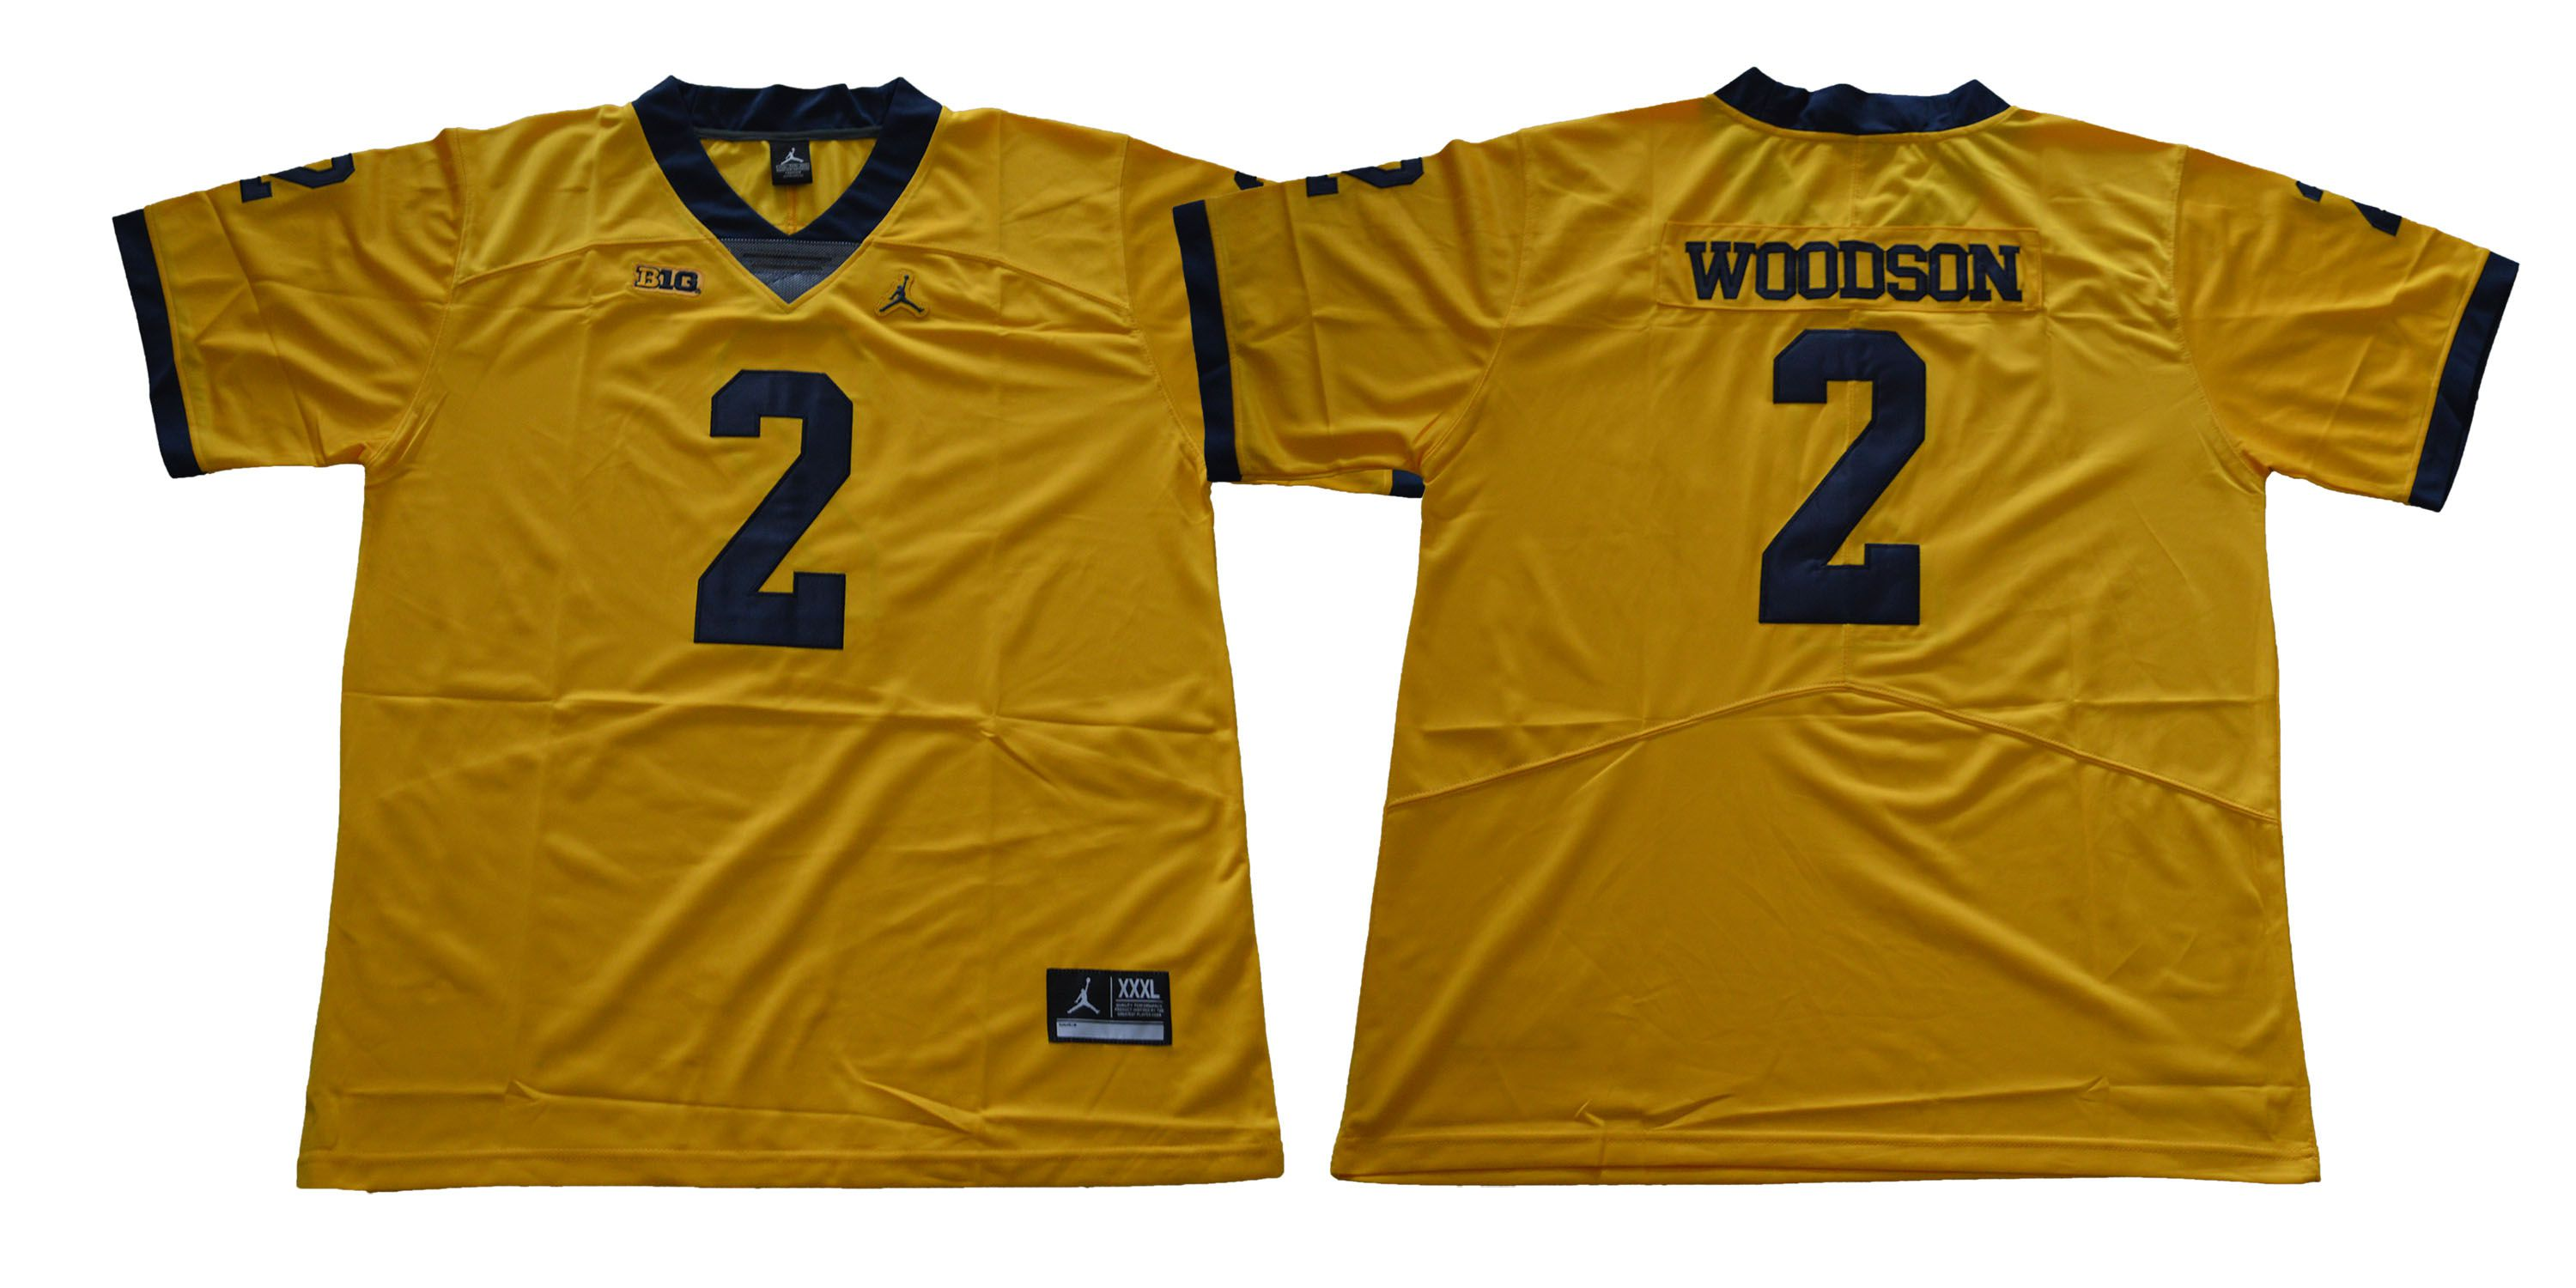 Men Michigan Wolverines 2 Woodson Yellow NCAA Jerseys